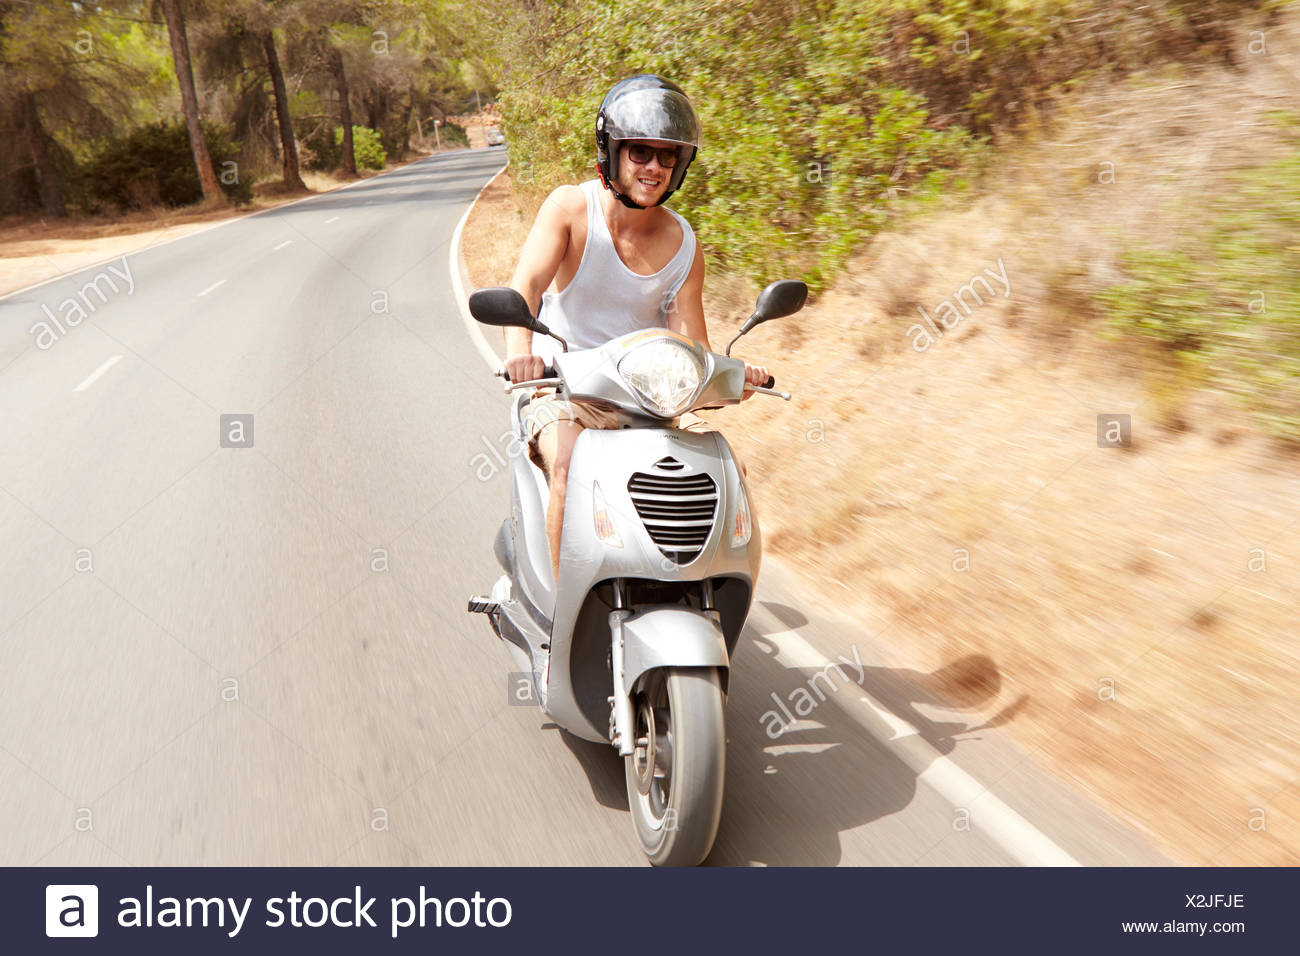 Young Man Riding Motor Scooter Along Country Road - Stock Image